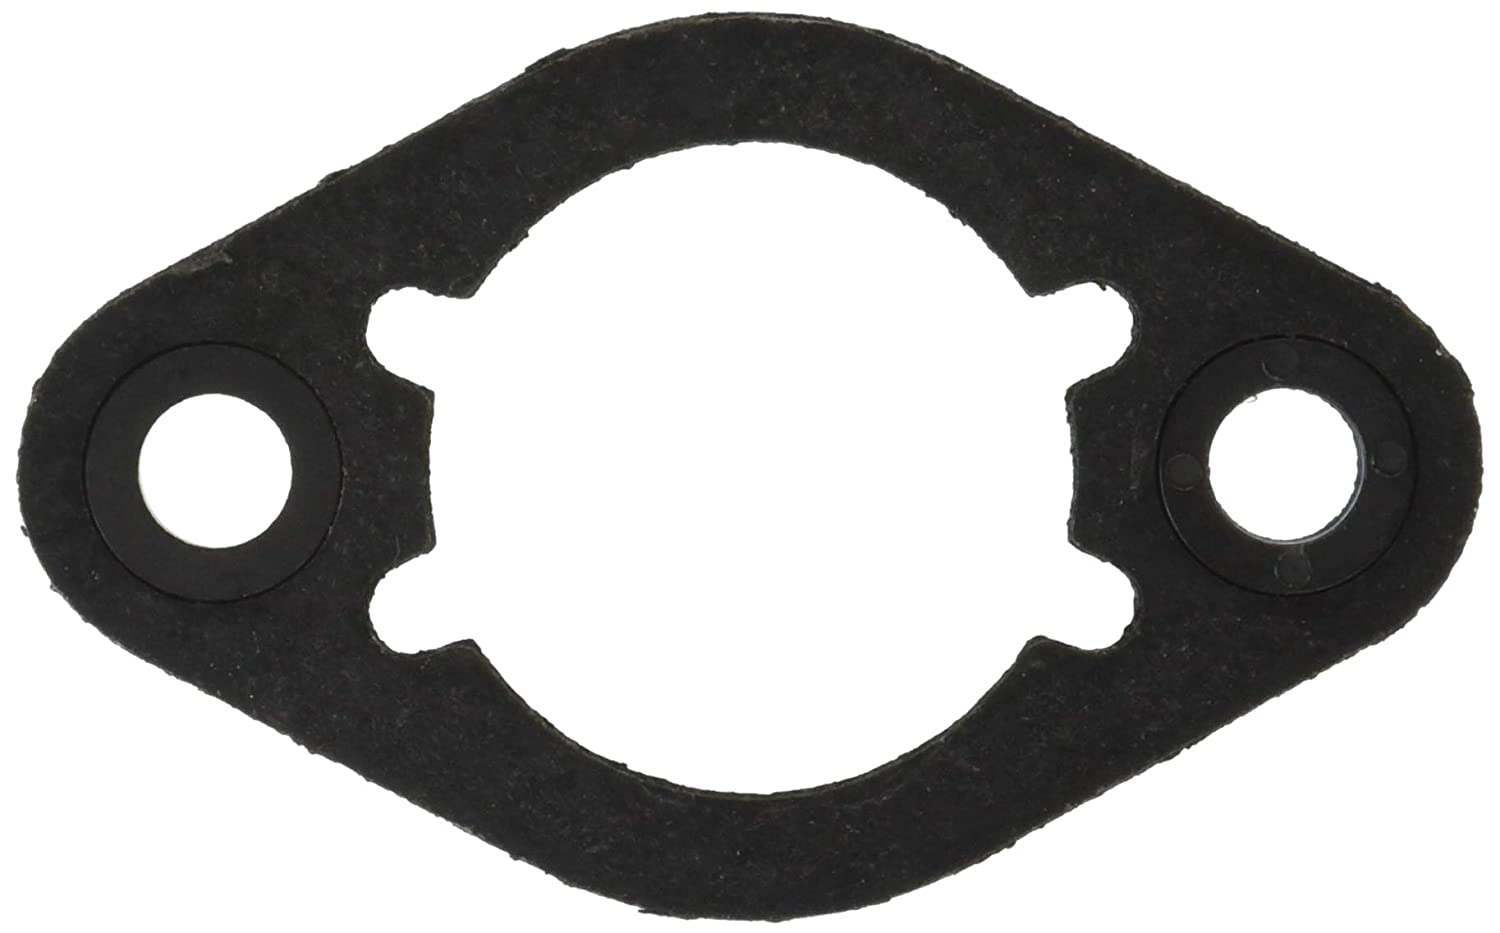 MAHLE Original G14142 Carburetor Mounting Gasket